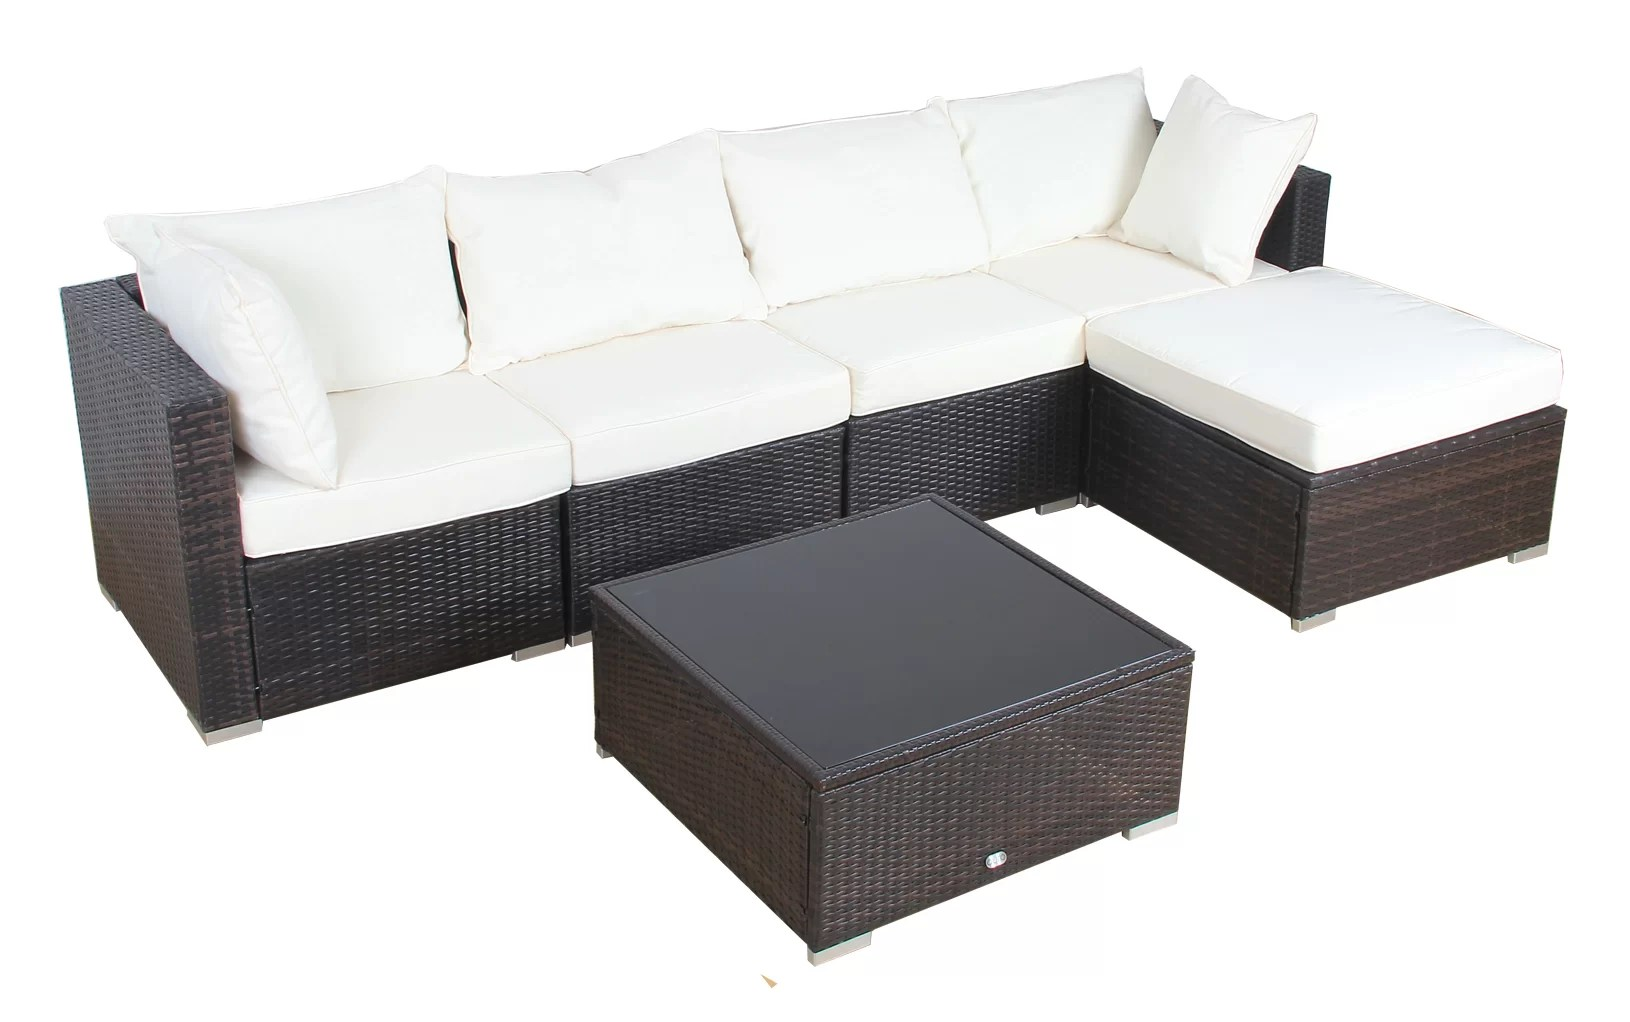 Outdoor Sofa Rattan Patio 6 Piece Rattan Sectional Set With Cushions